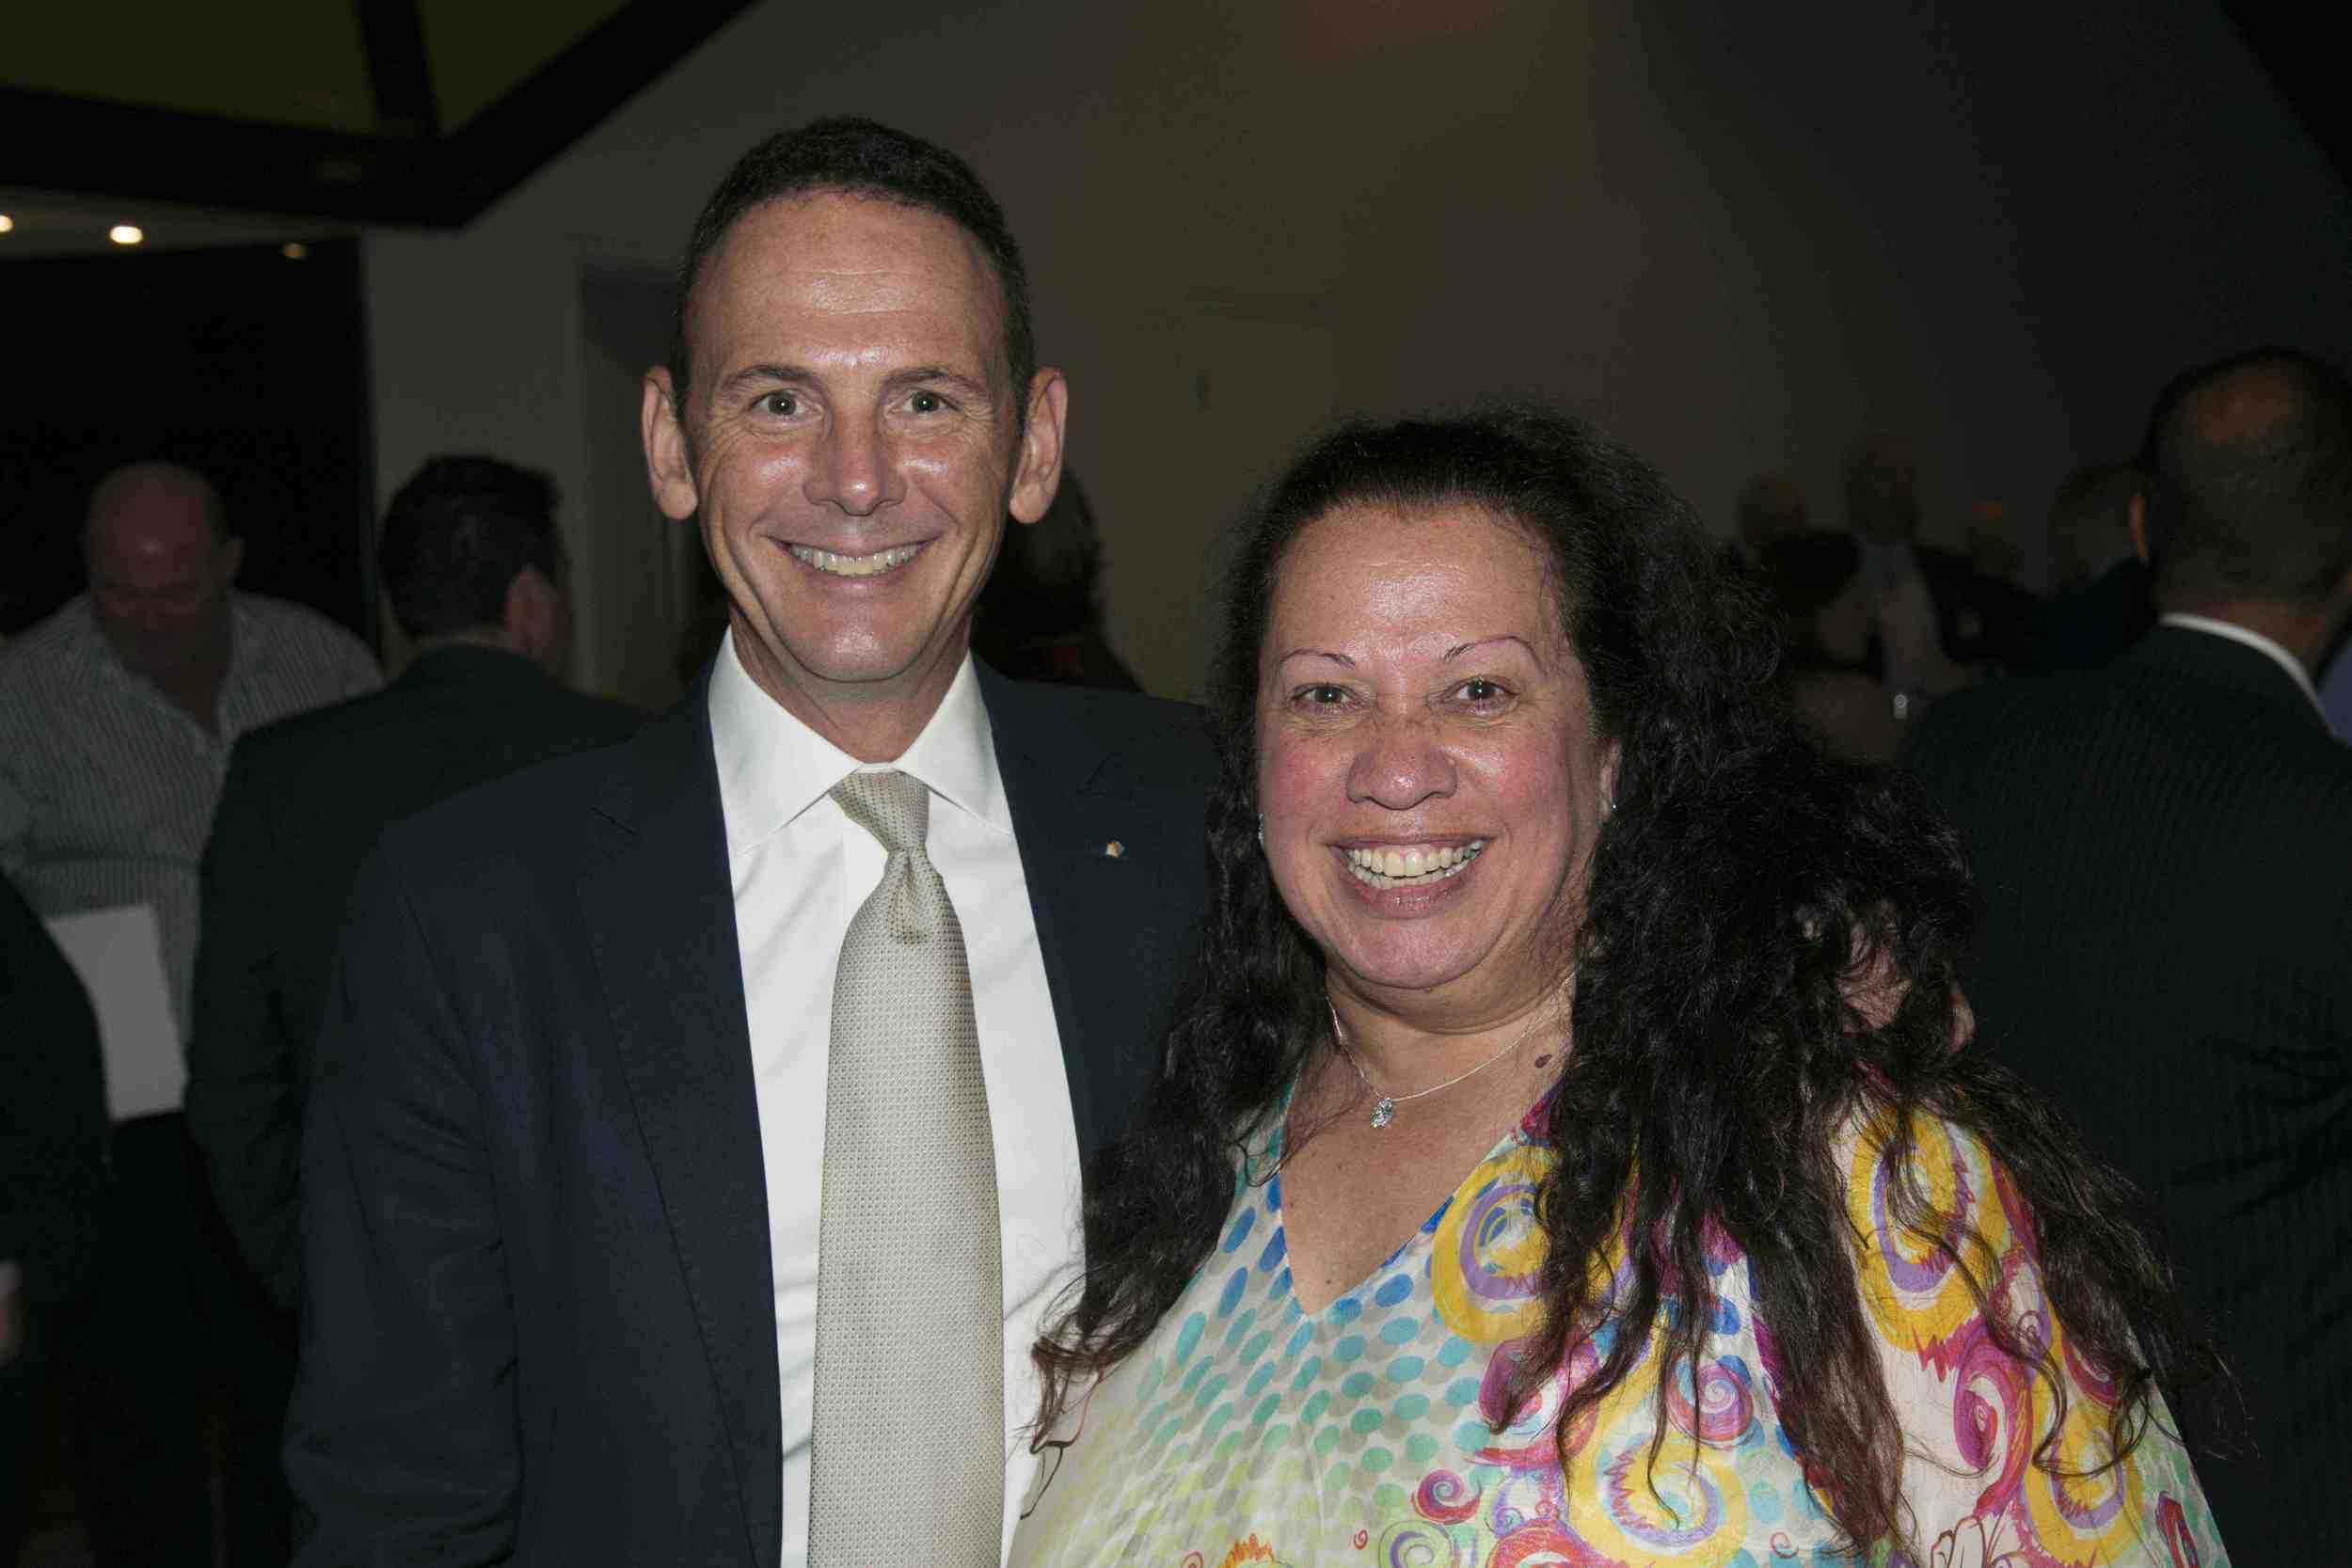 Leadership WA award winners Frank Daly (Acting chief executive of the Child and Adolescent Health Service) and Colleen Hayward - head of Kurongkurl Katitjin, Edith Cowan University's Centre of Indigenous Education and Research.